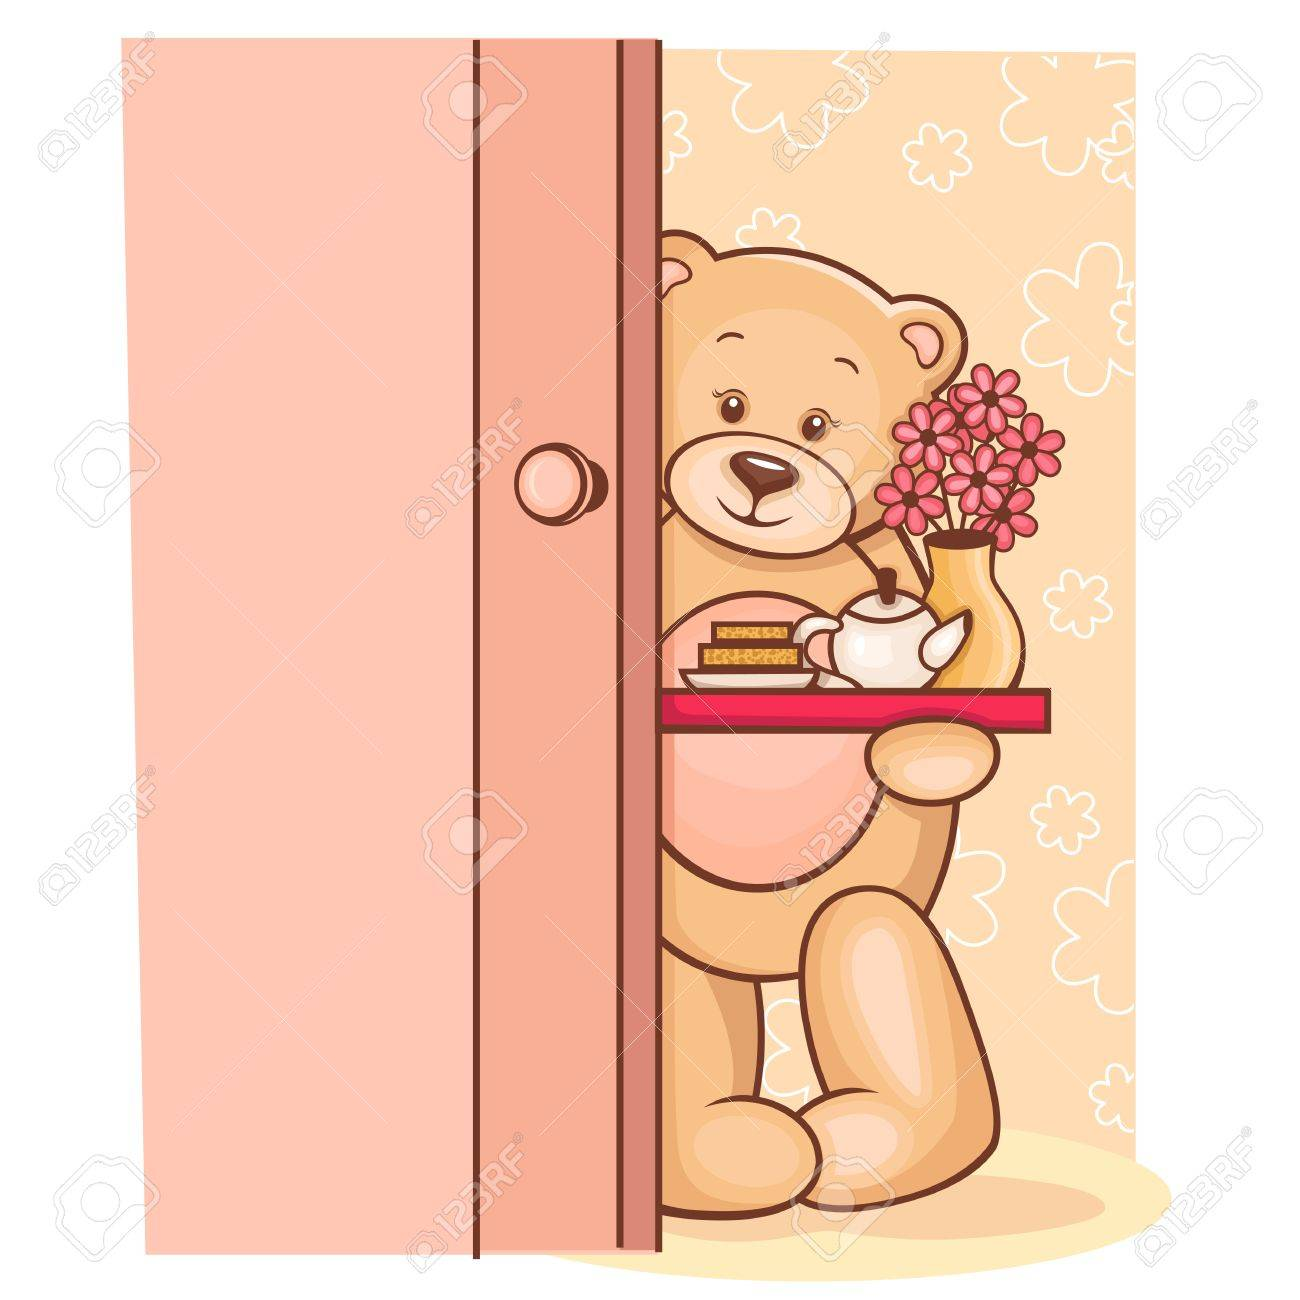 Illustration of cute Teddy Bear holding a breakfast tray with flowers Stock Illustration - 13195386